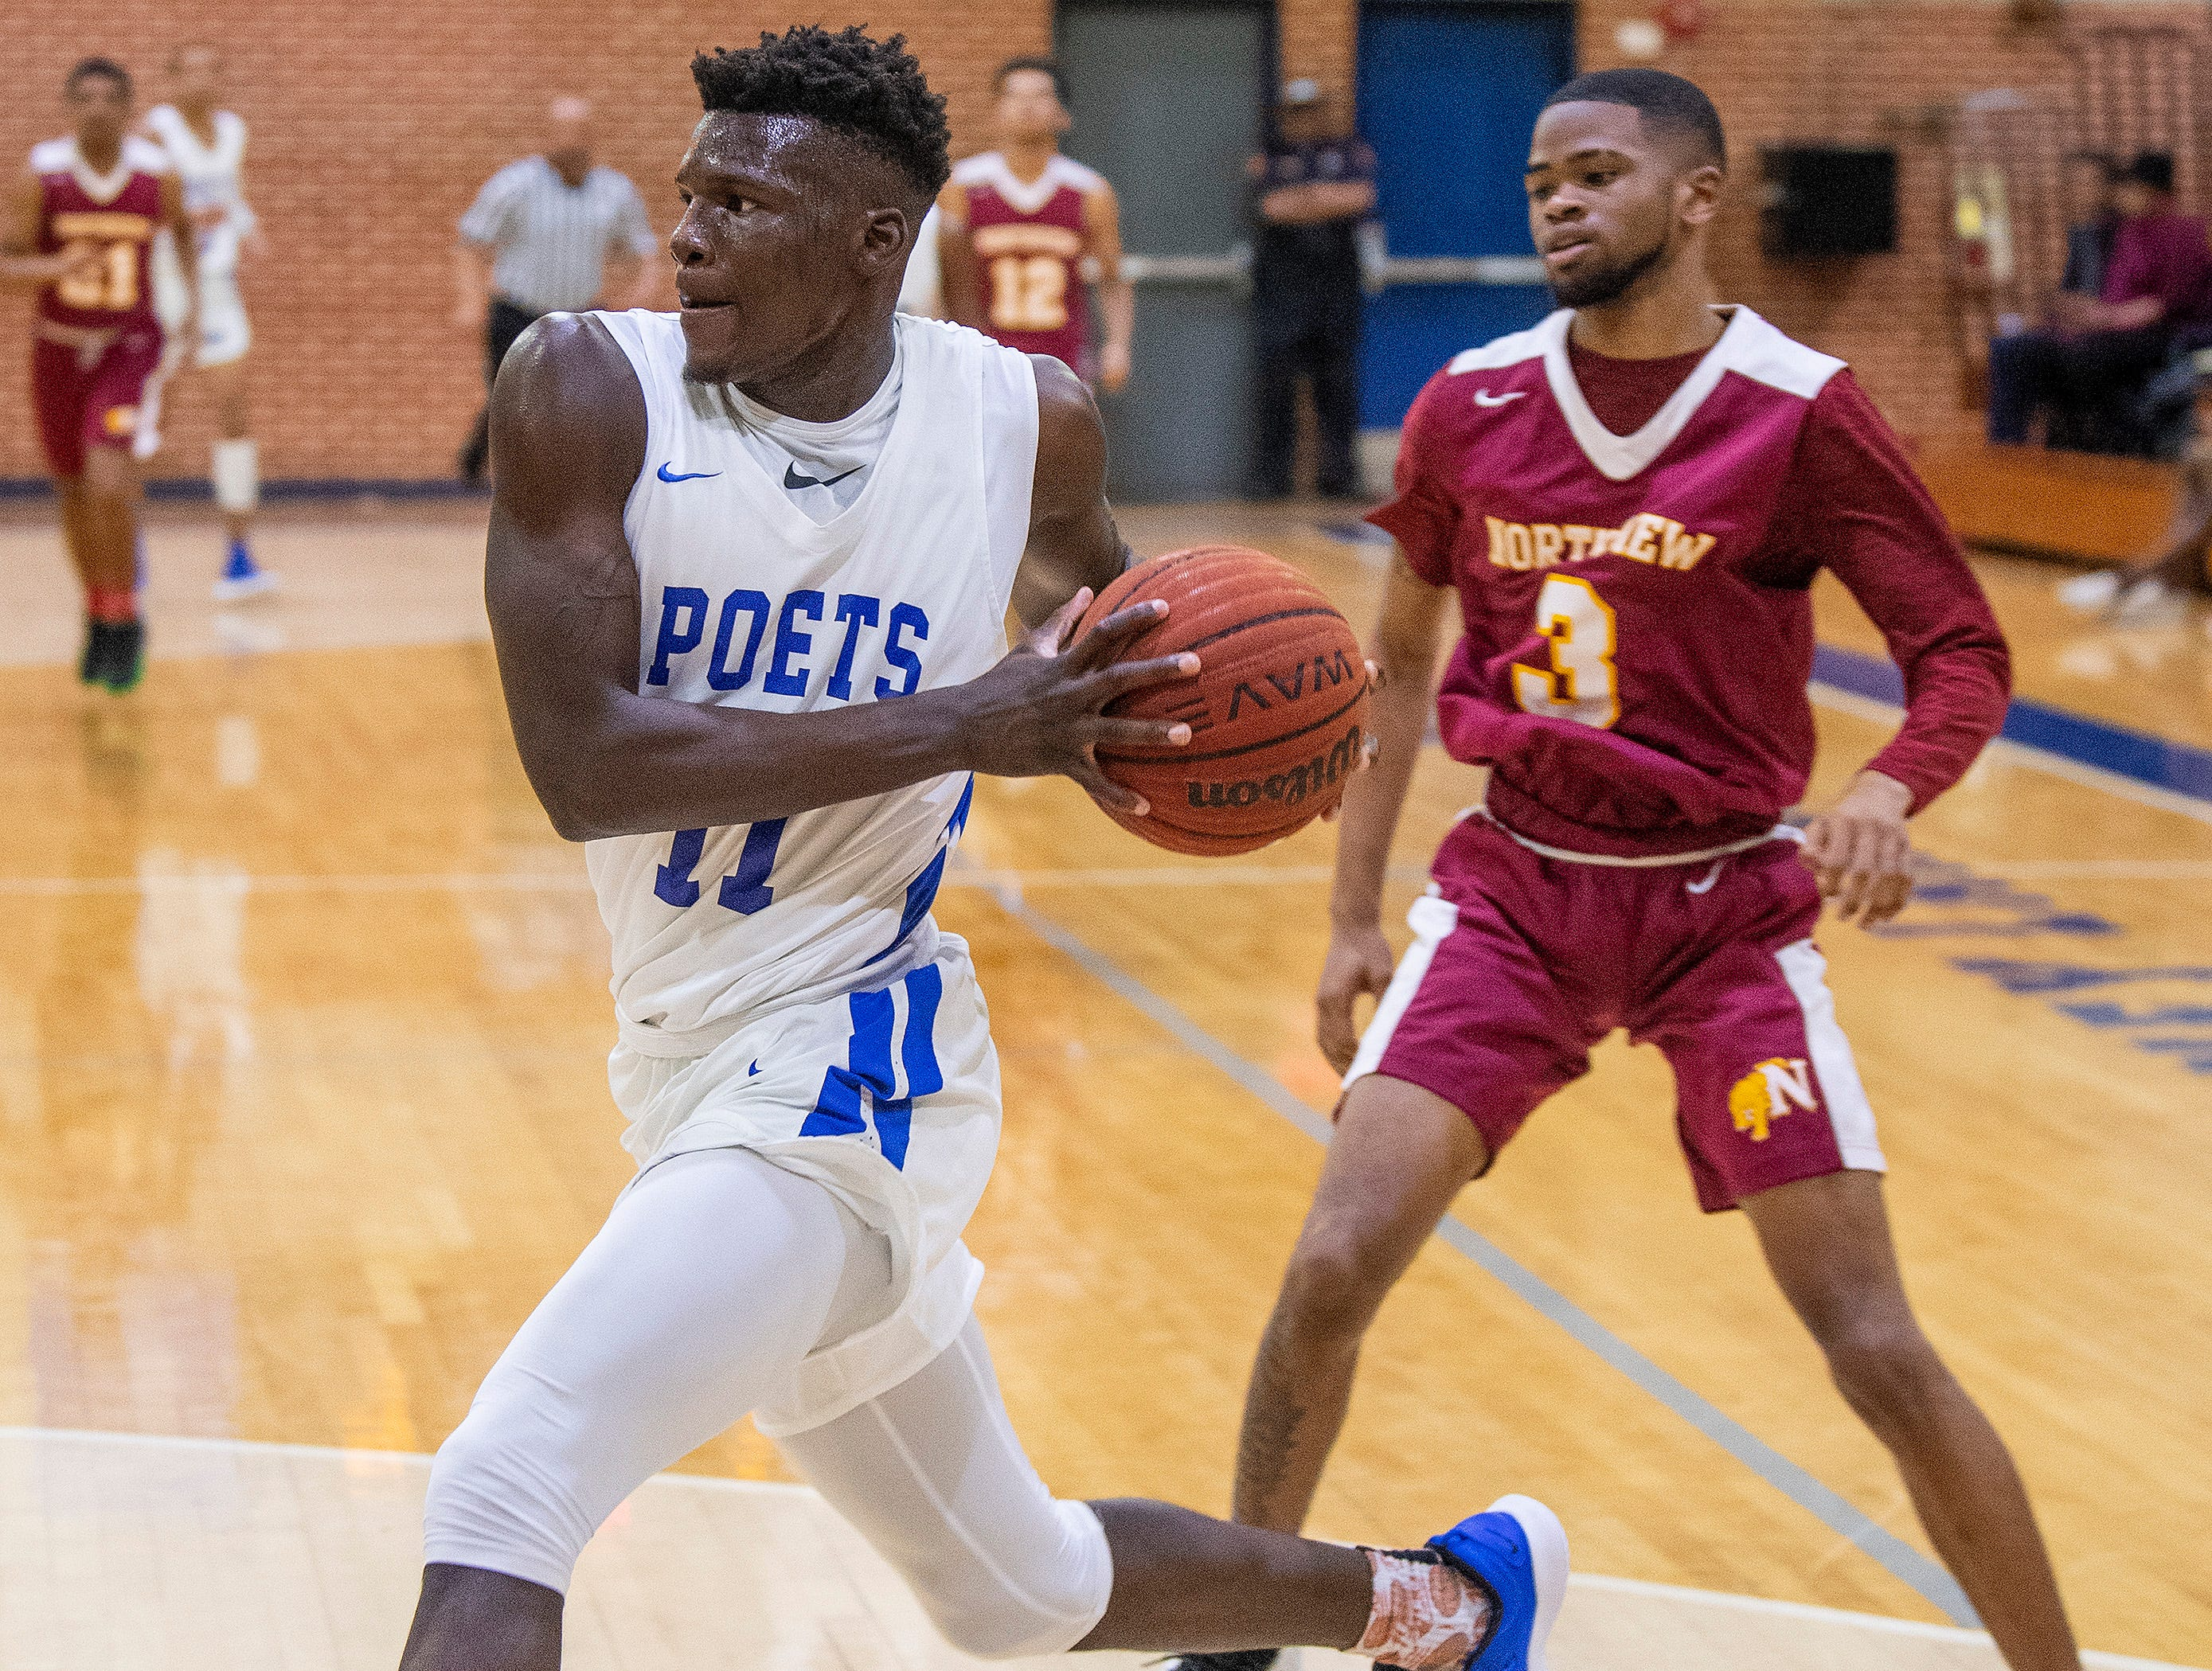 Lanier's Antwan Burnett (11) against Northview at the Lanier campus in Montgomery, Ala., on Tuesday February 12, 2019.